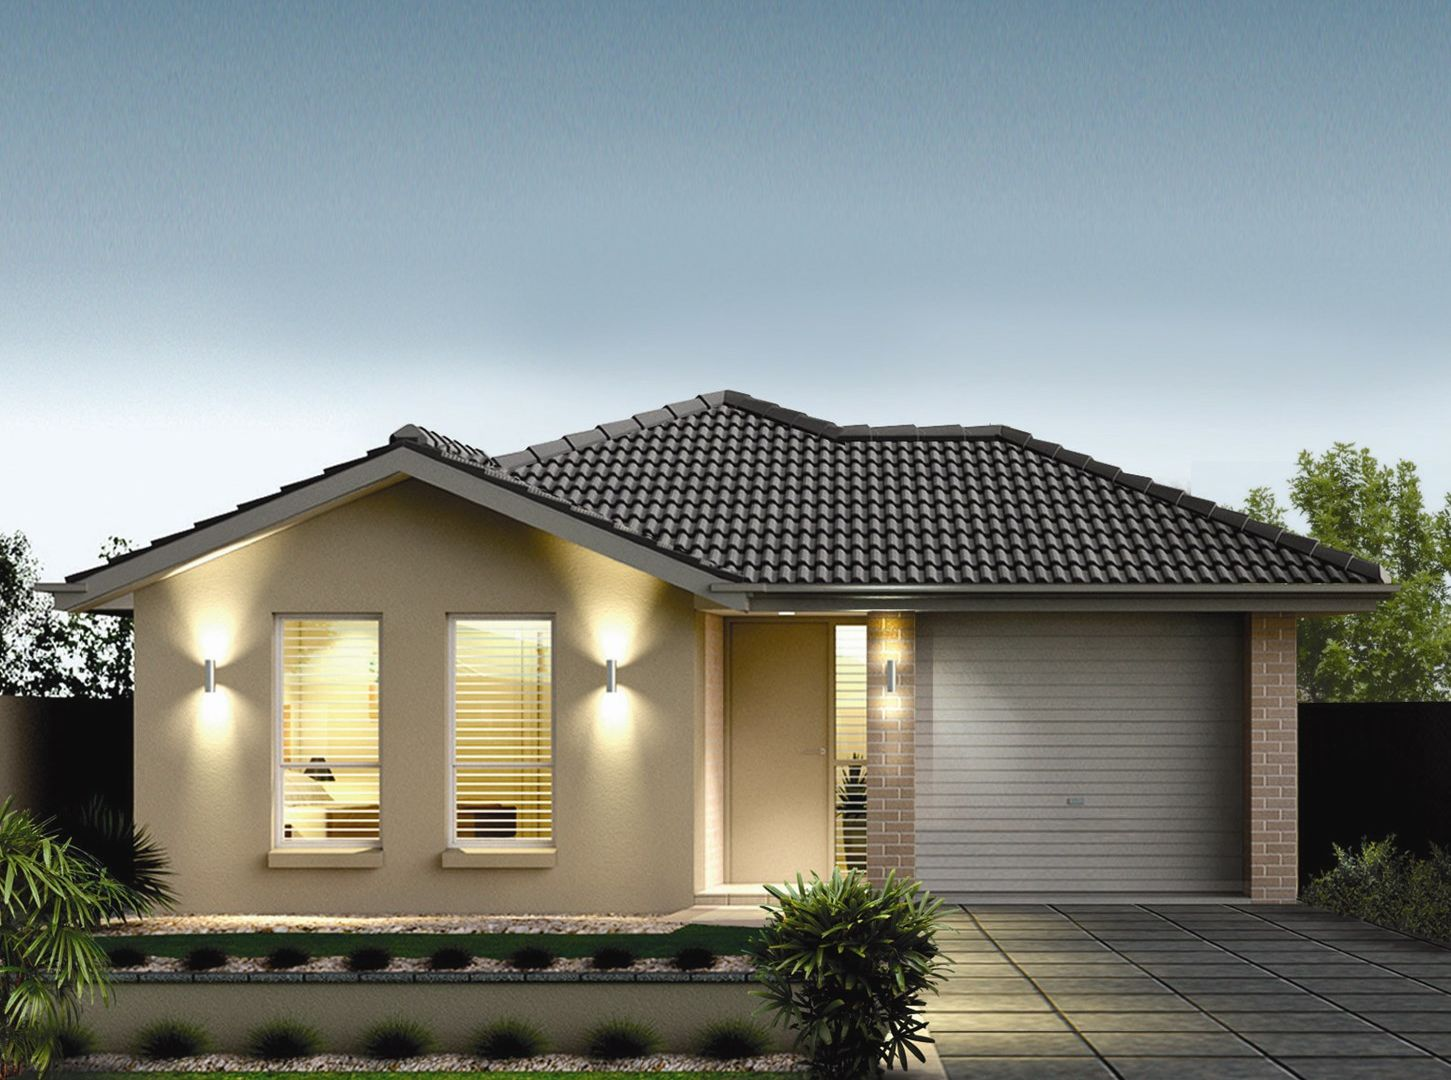 Lot 213 Belair Terrace, Mount Barker SA 5251, Image 1